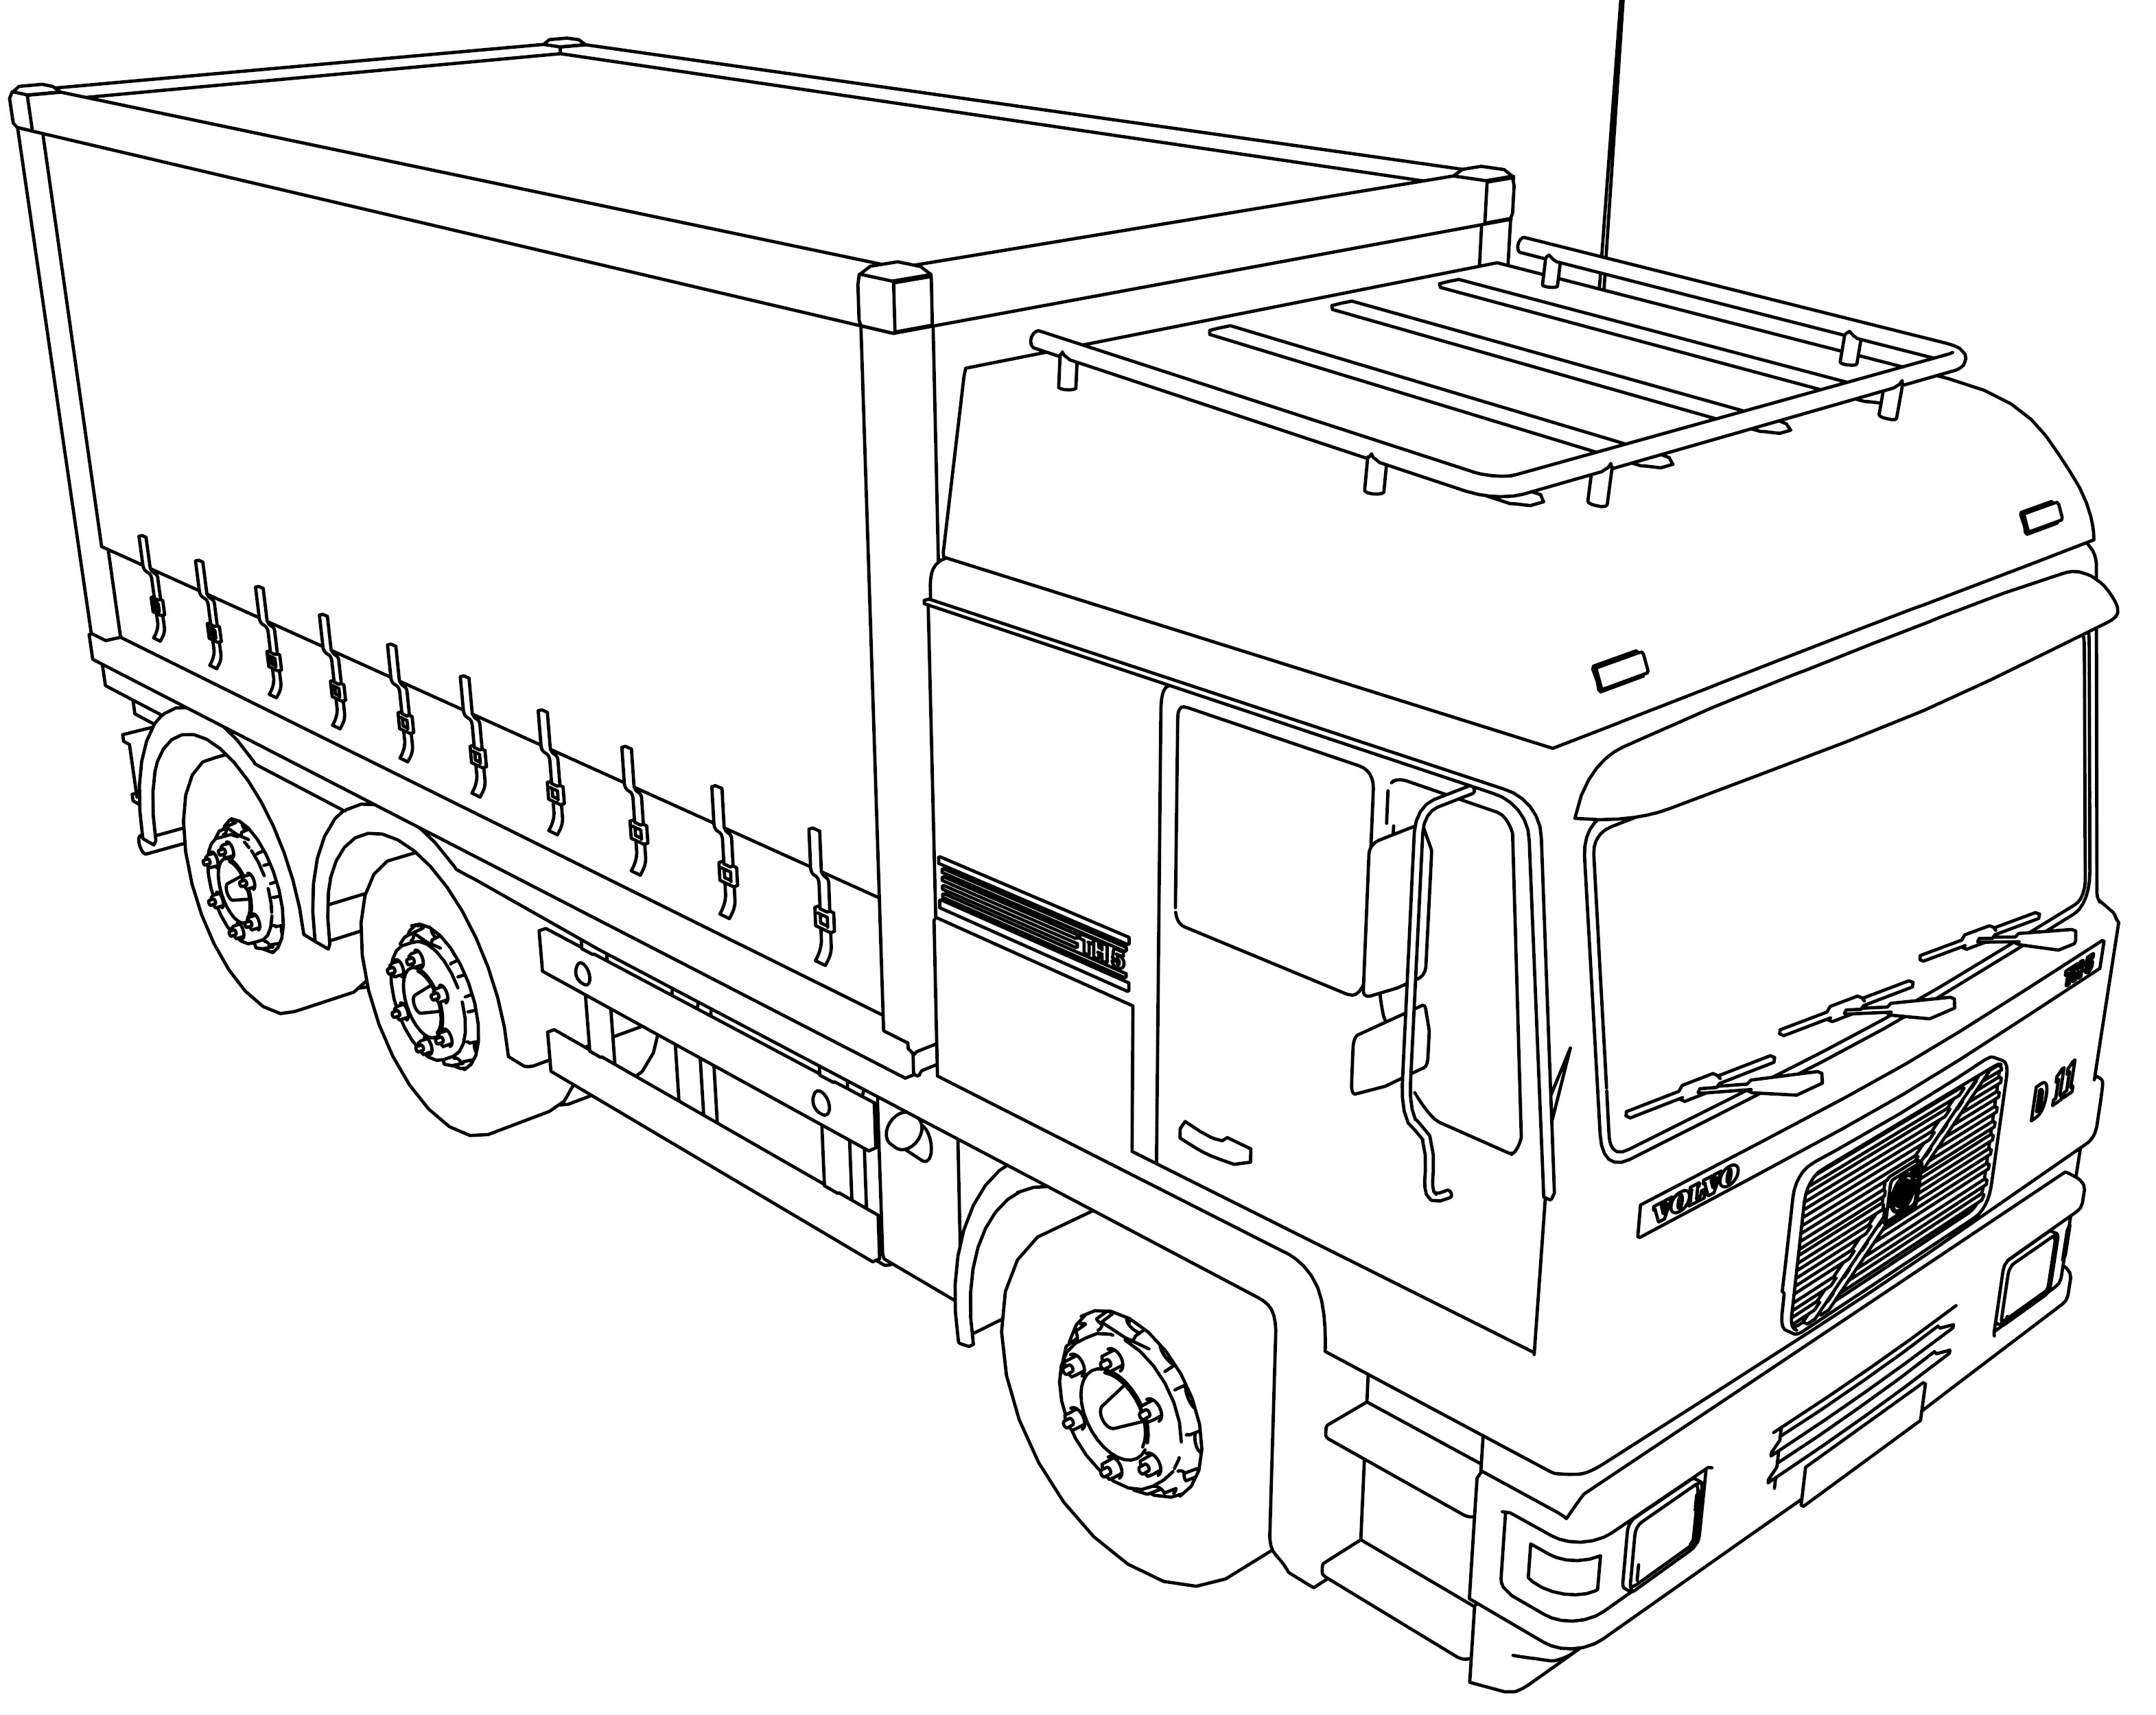 Volvo Th5 Military Truck Coloring Page